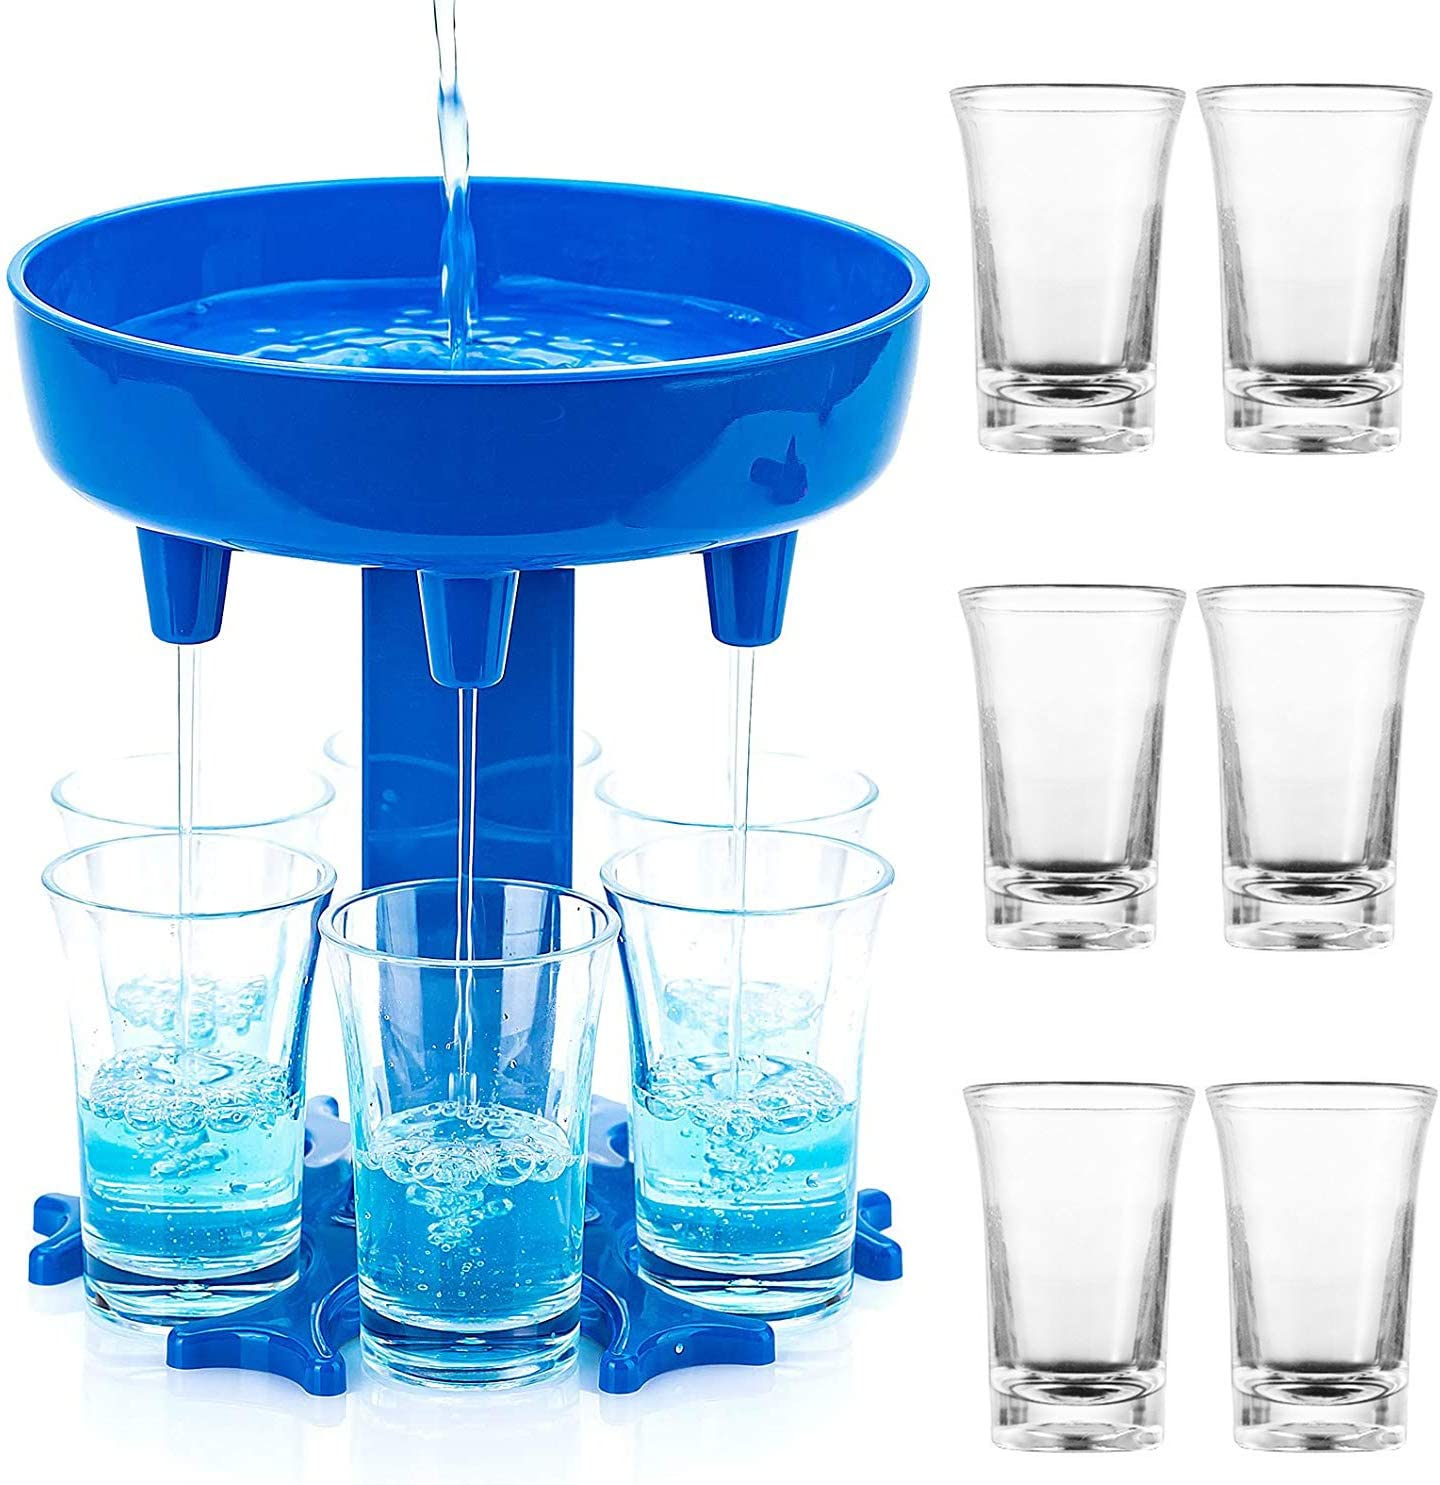 6 Shot Glass Dispenser and Holder Liquor Dispenser, Shots Dispenser Bar Shot Dispenser For Home Bar, Man Cave Decor, Bar Decor, Party Games, Adult Party Games-Include 6 shot glasses (Blue, Circle)